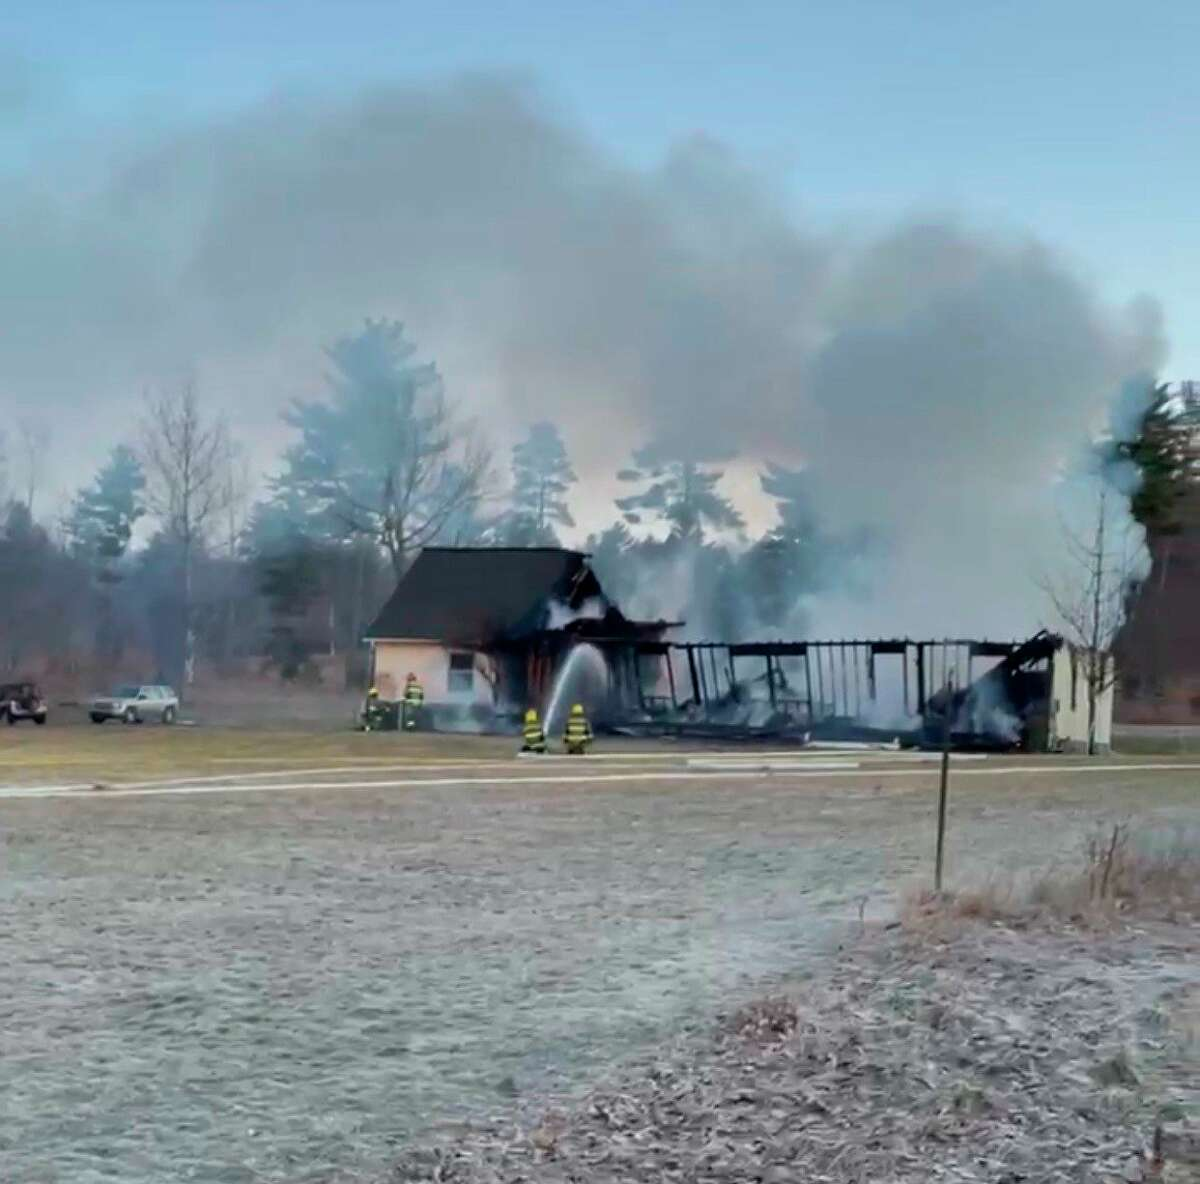 Fire consumed a home on Opal Ridge Drive in Onekama on Saturday. A GoFundMe has been set up to help the homeowners rebuild. (Courtesy Photo/Kara Klein)